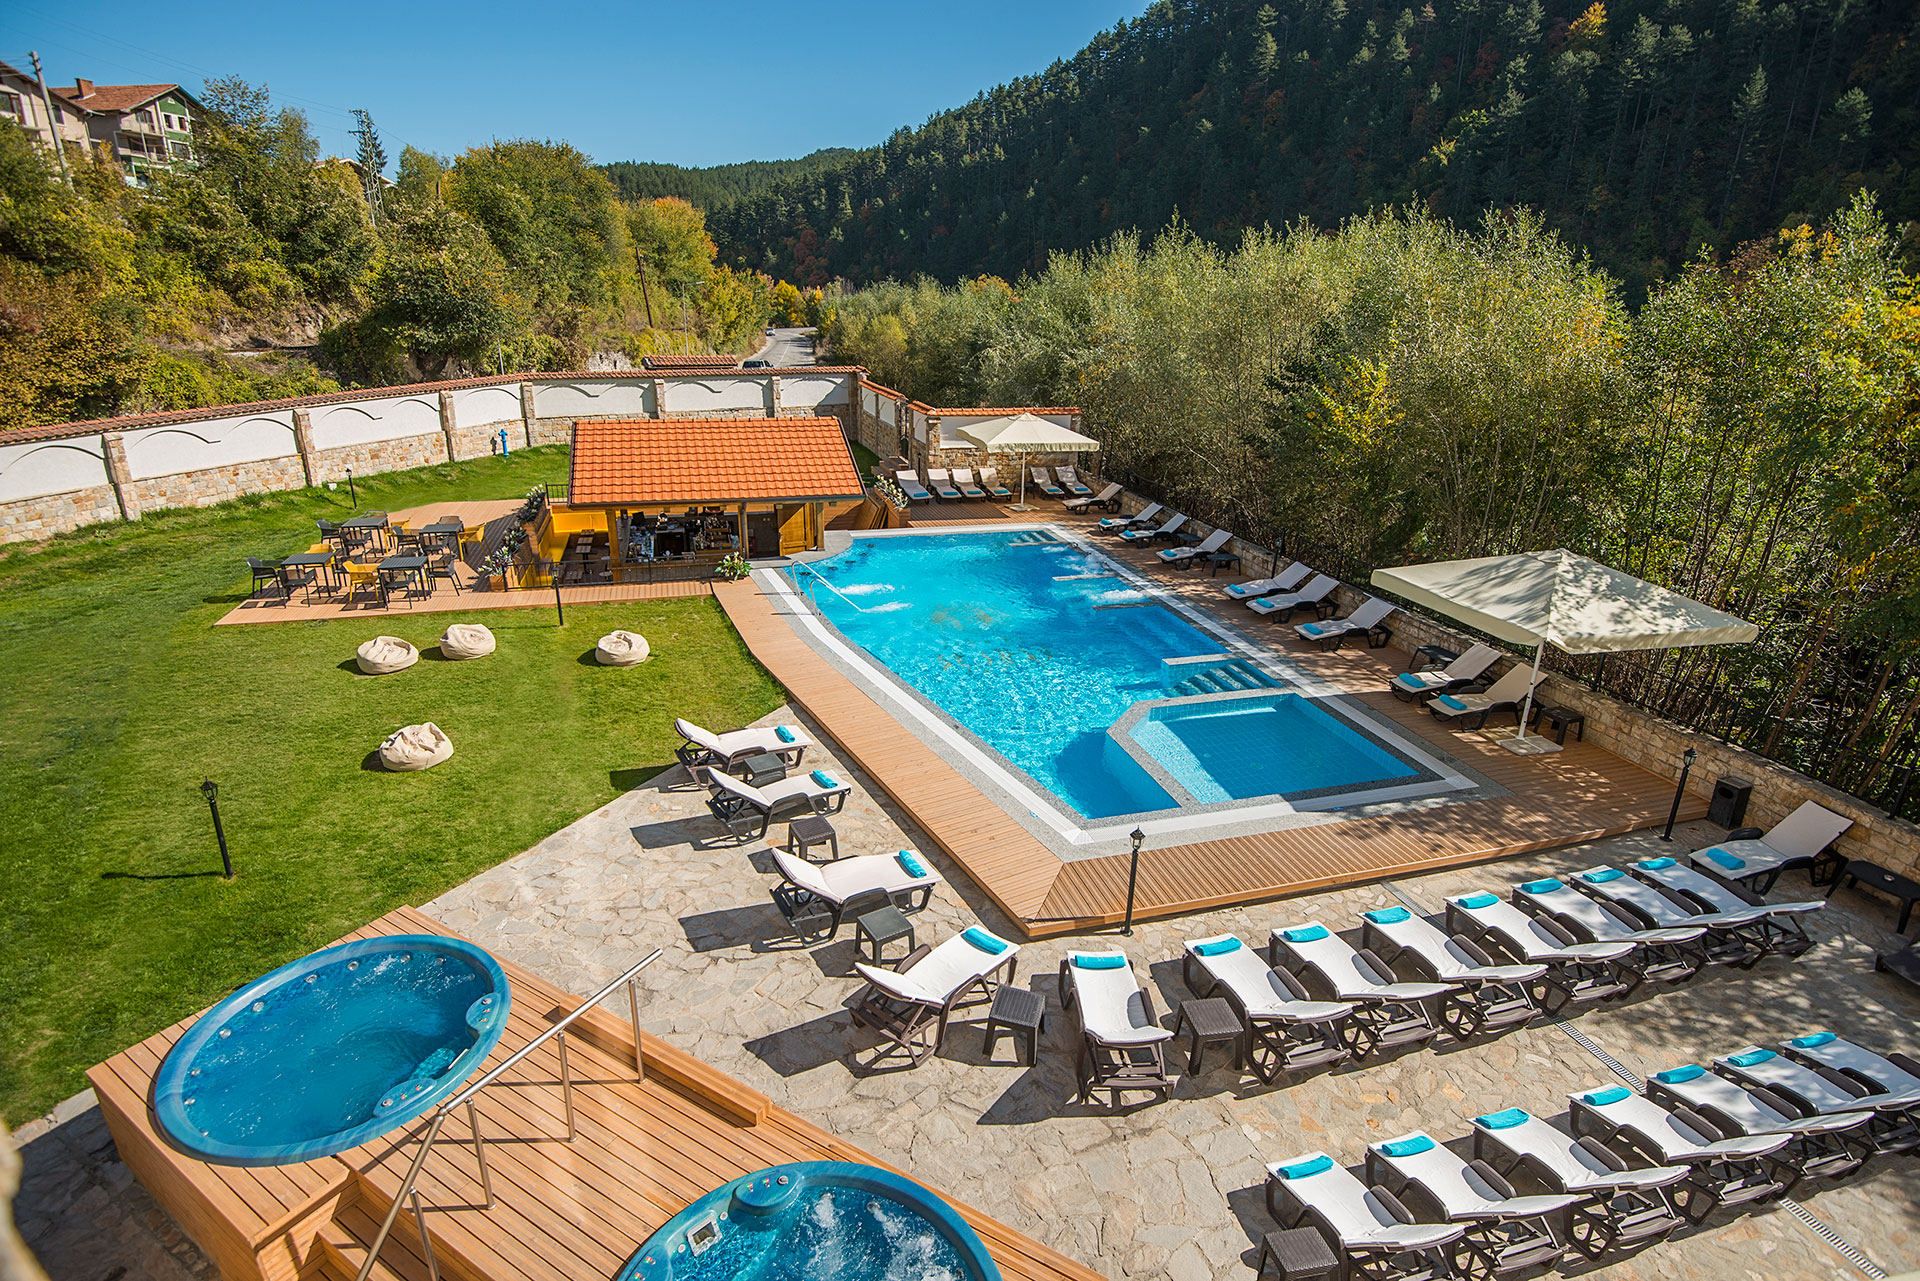 Aquatonic-outdoor-pool-with-a-built-in-bar-amongst-the-pristine-nature-surrounding-the-hotel-Saint-Spas-Velingrad